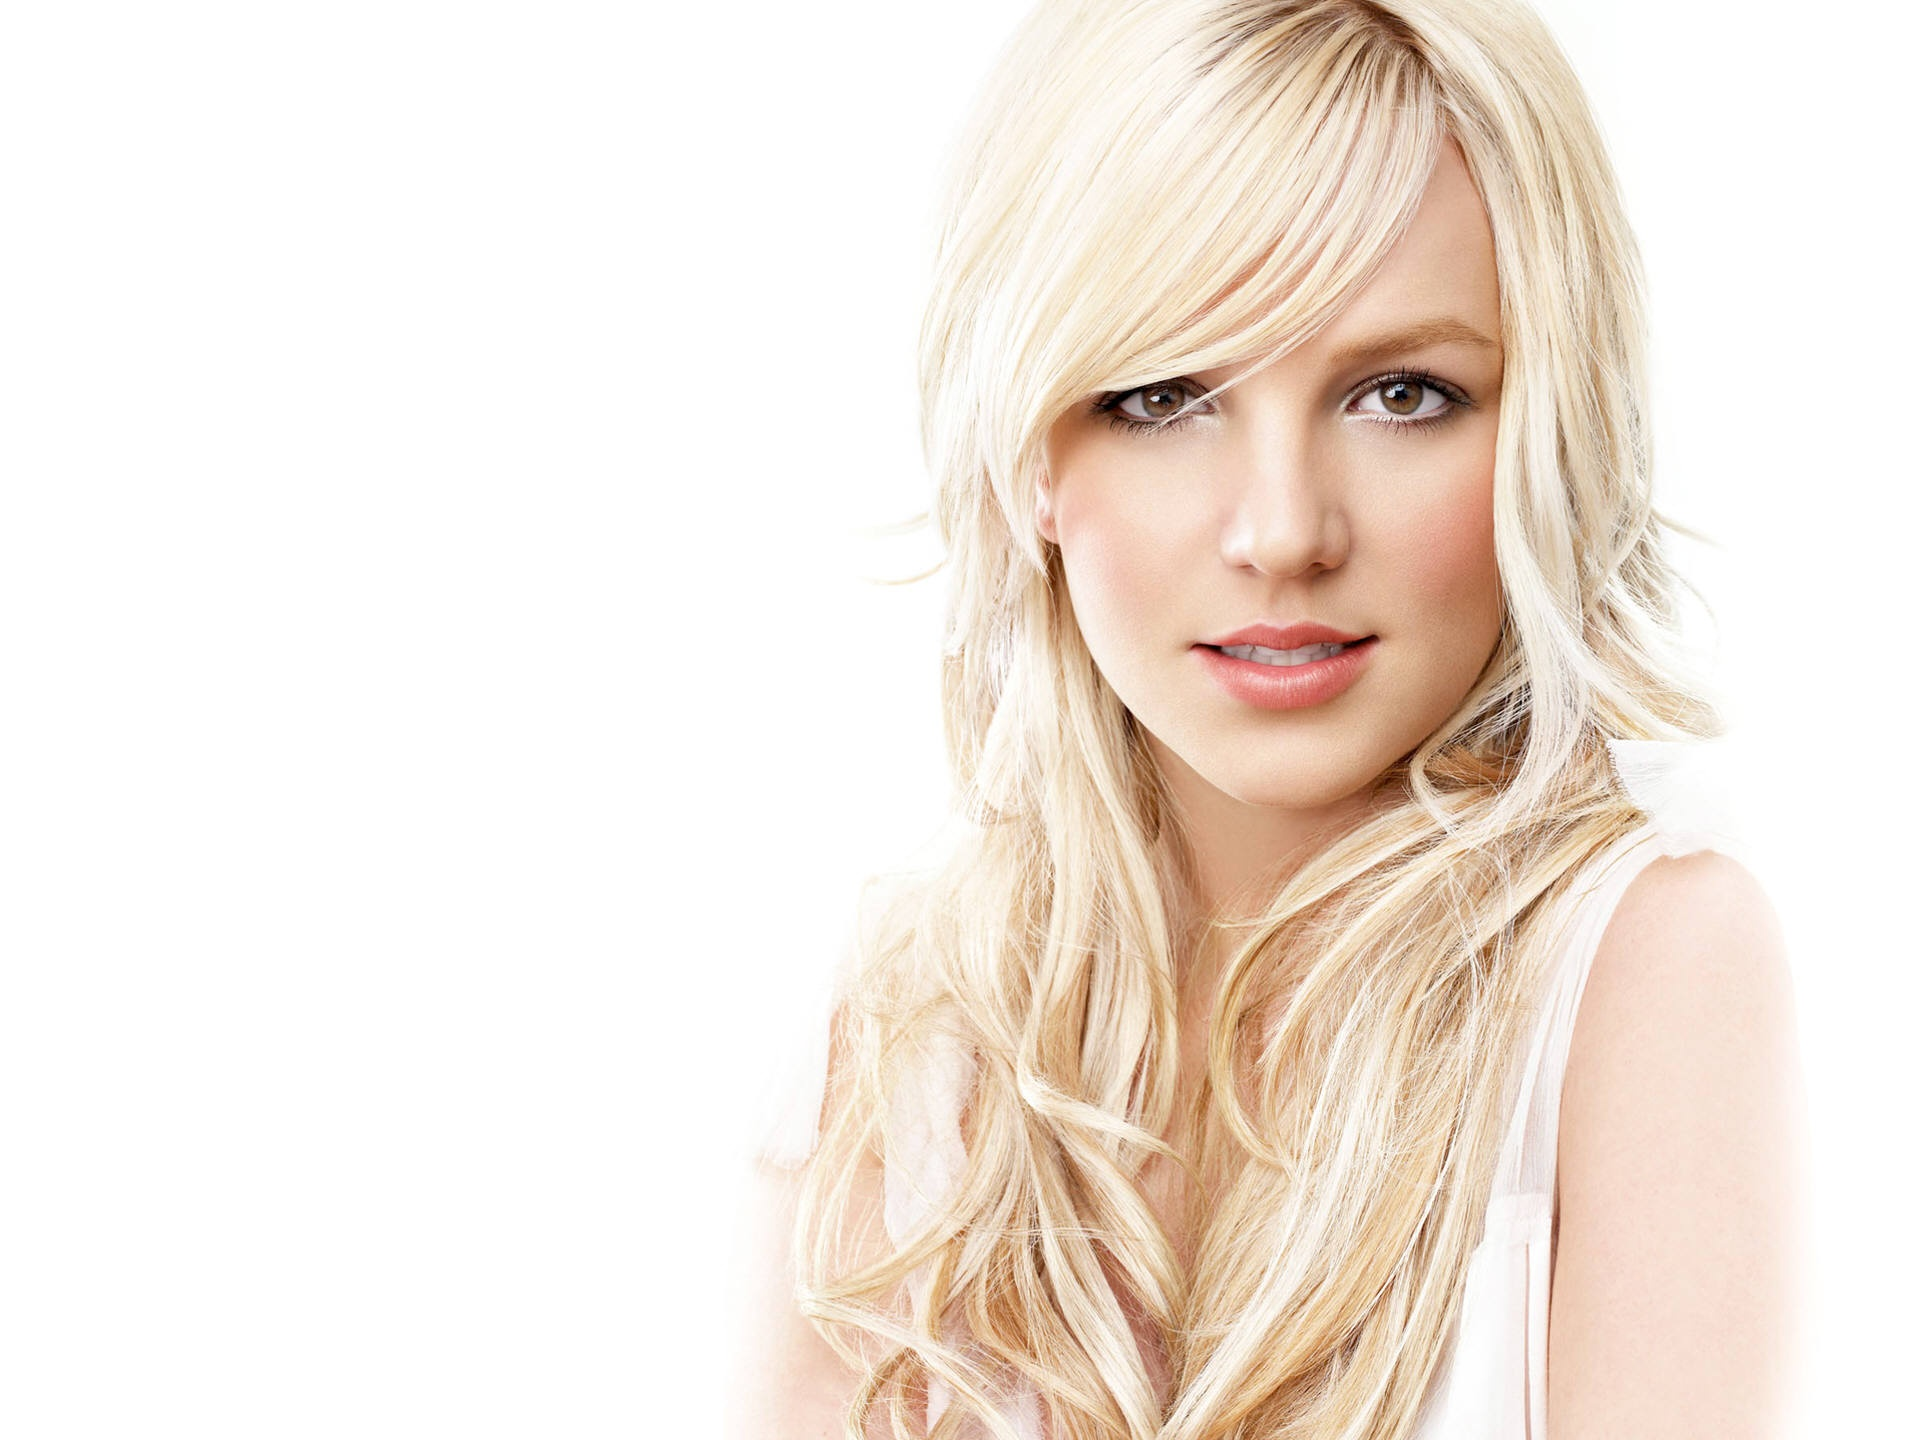 britney spears hd a4